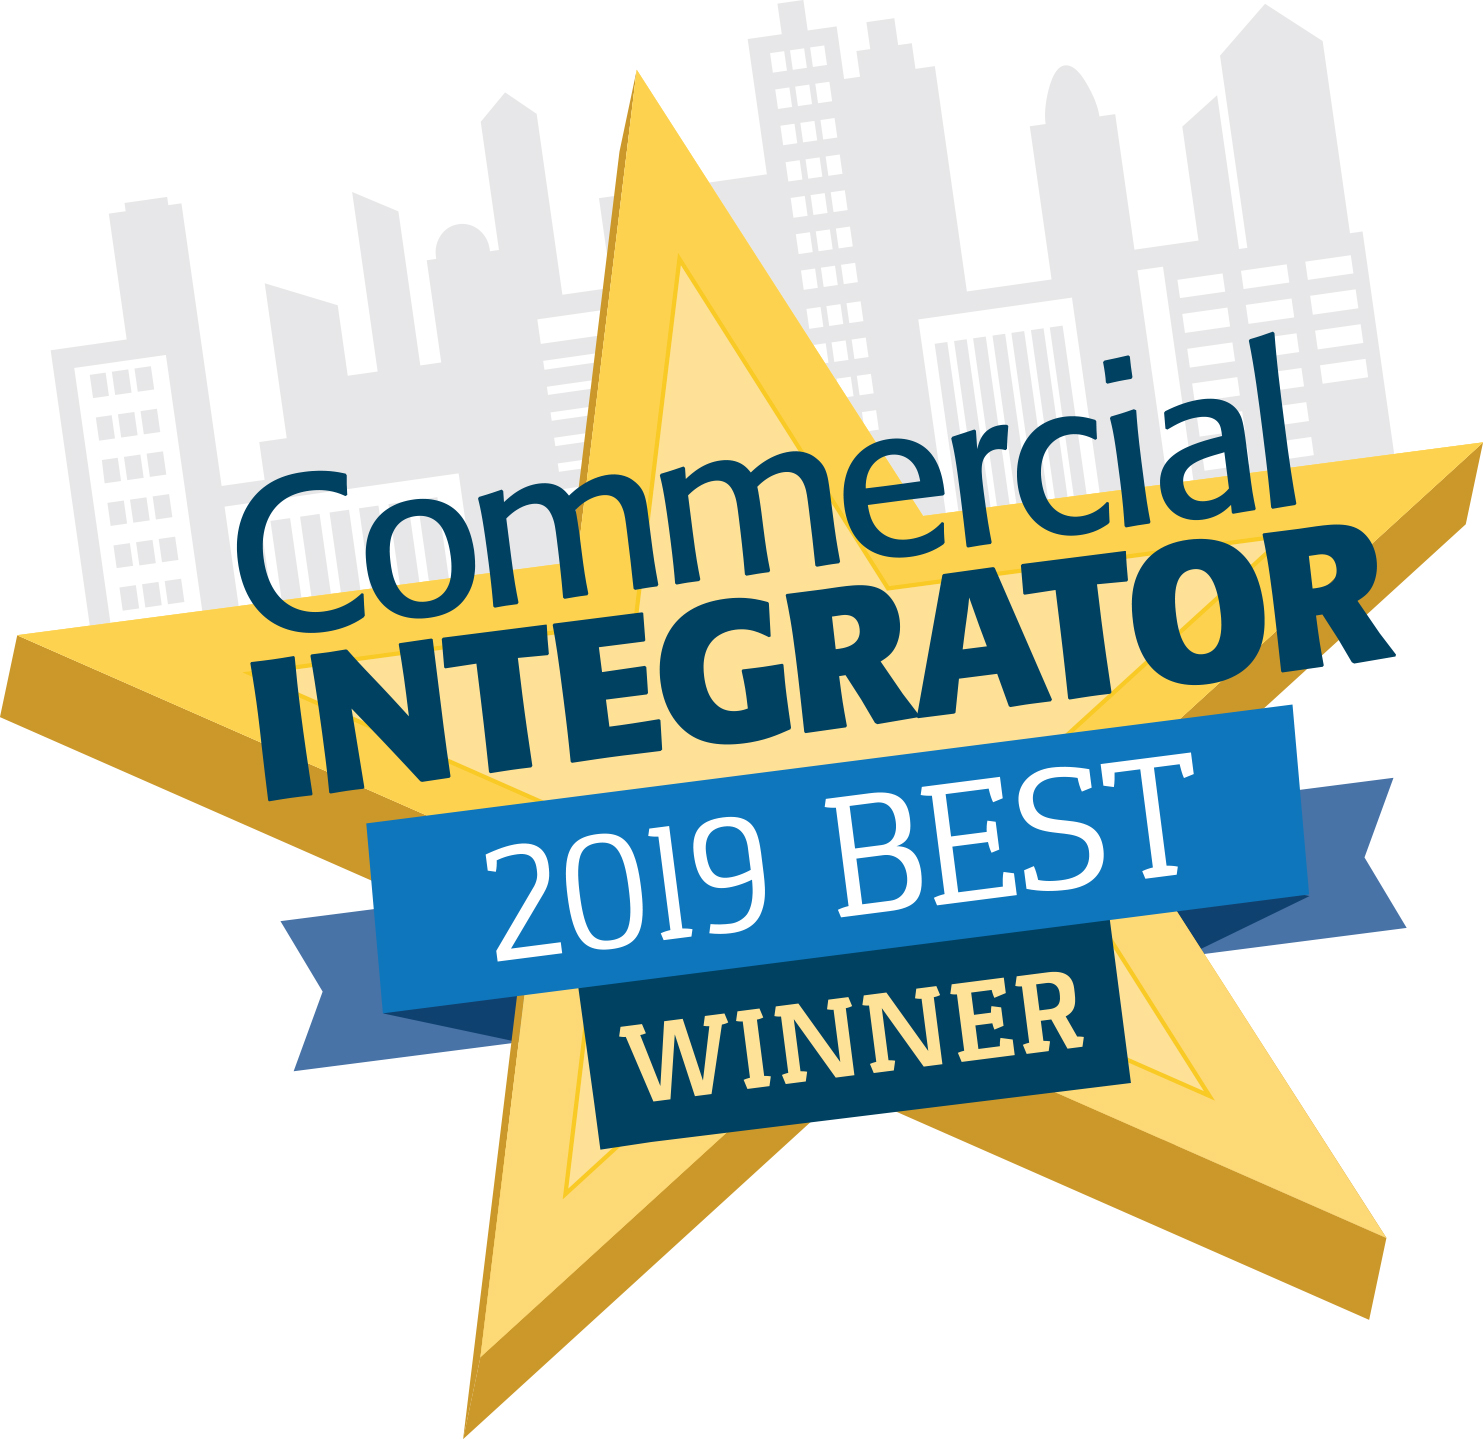 Commerical Integrator 2019 Best Winner